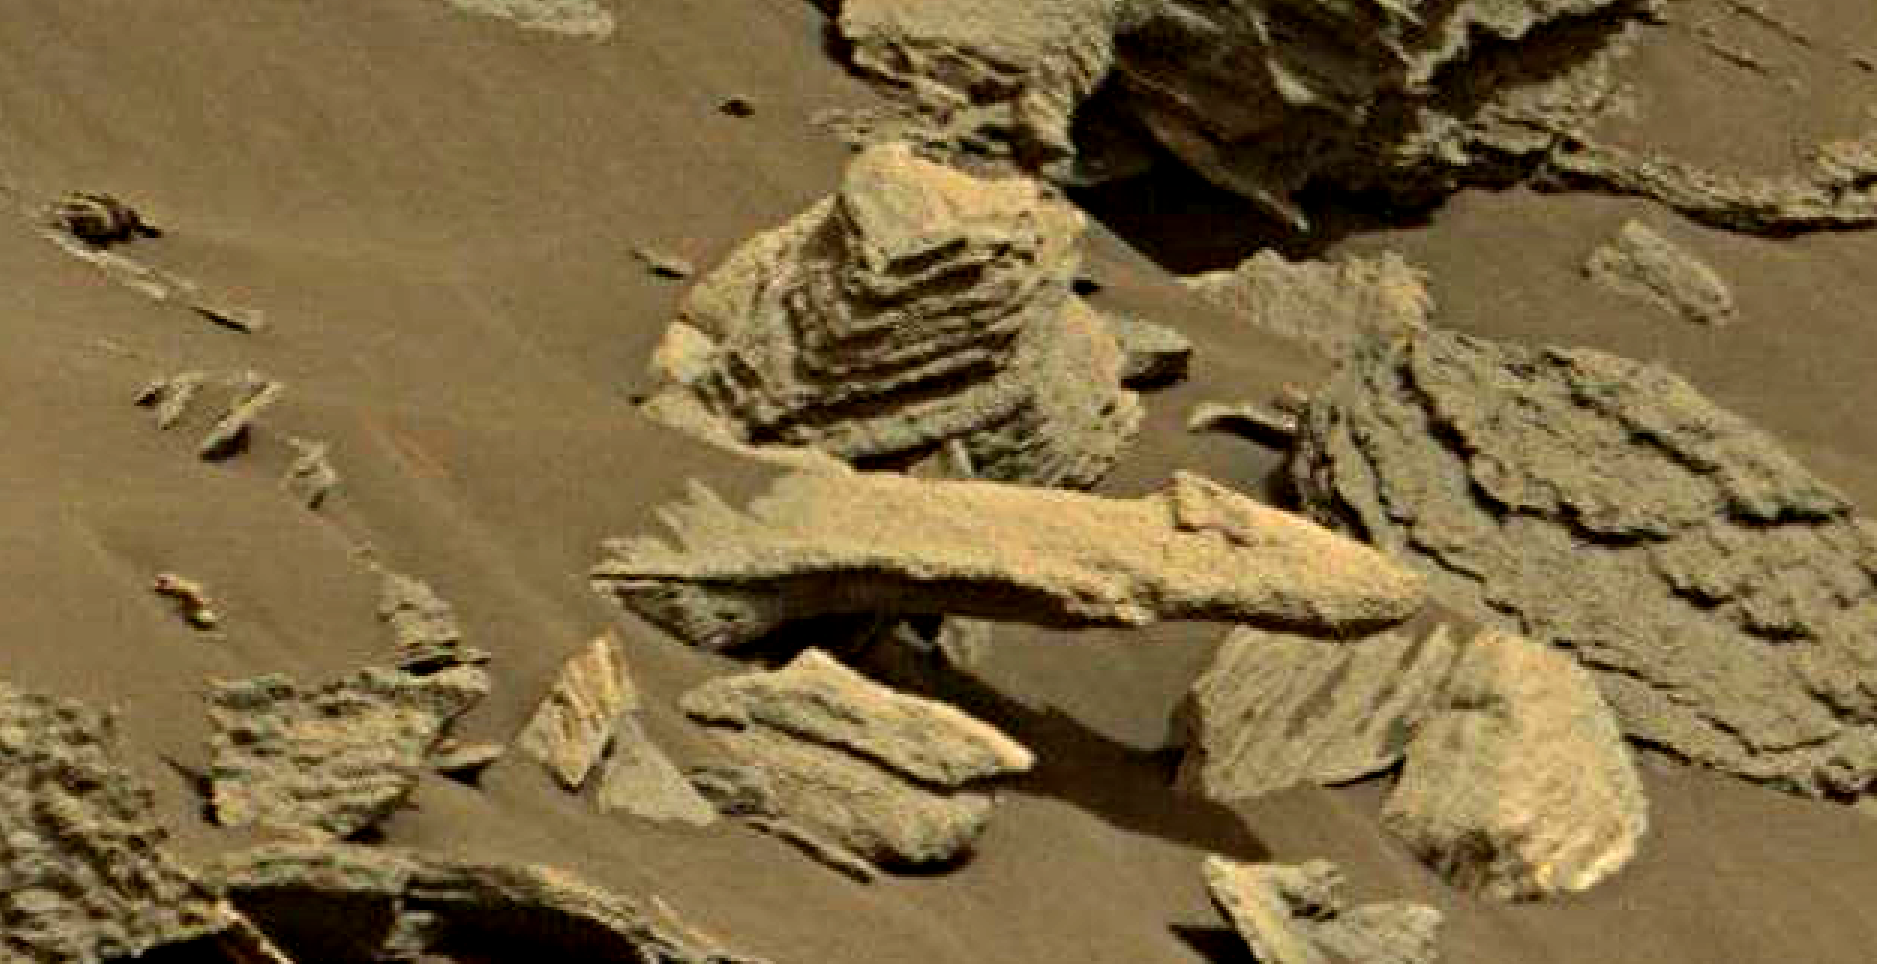 mars-sol-1450-anomaly-artifacts-2-was-life-on-mars